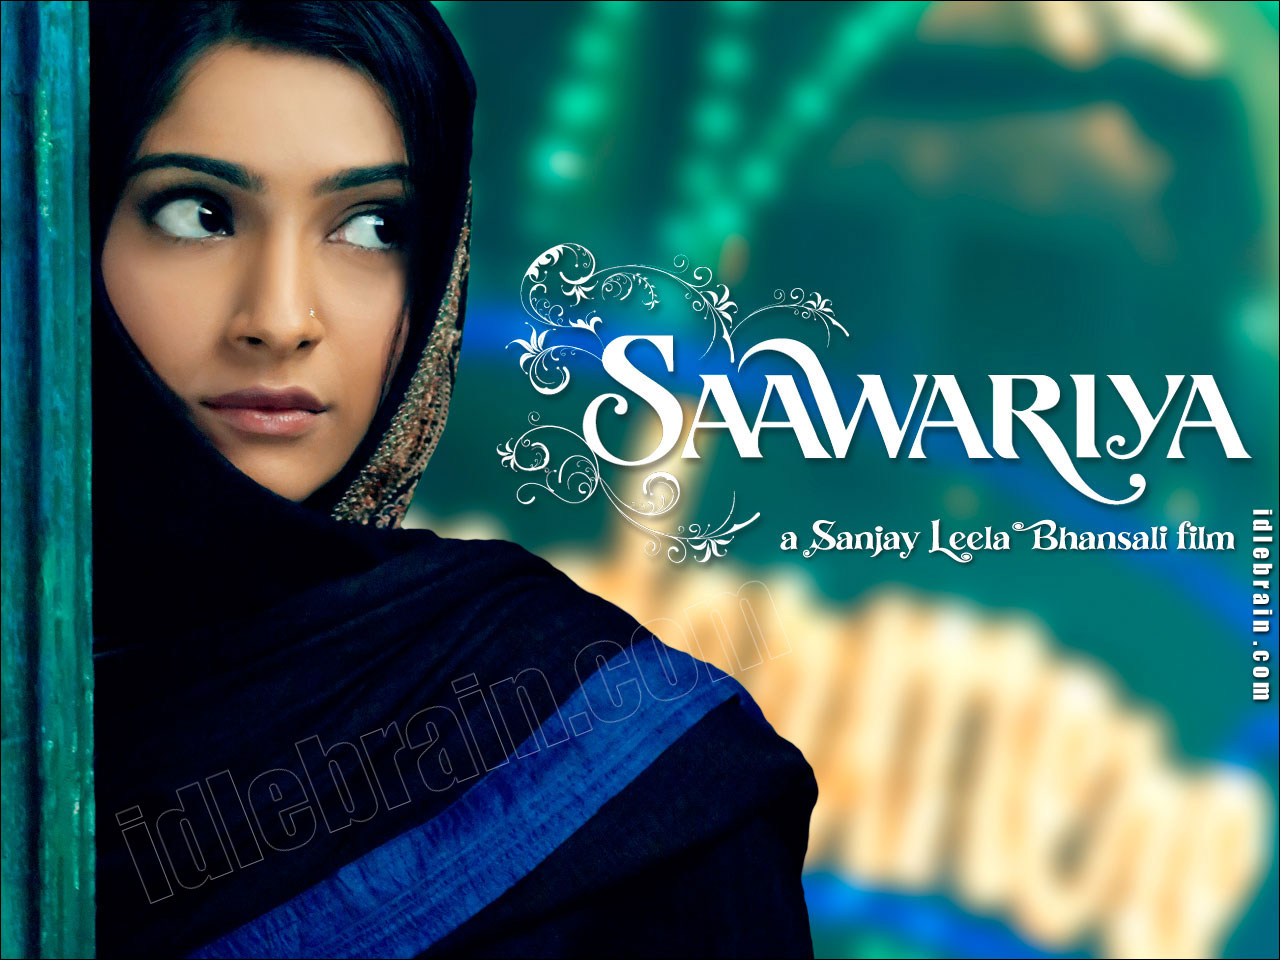 Saawariya Song, Lyrics (Sawariya Songs) - Indicine